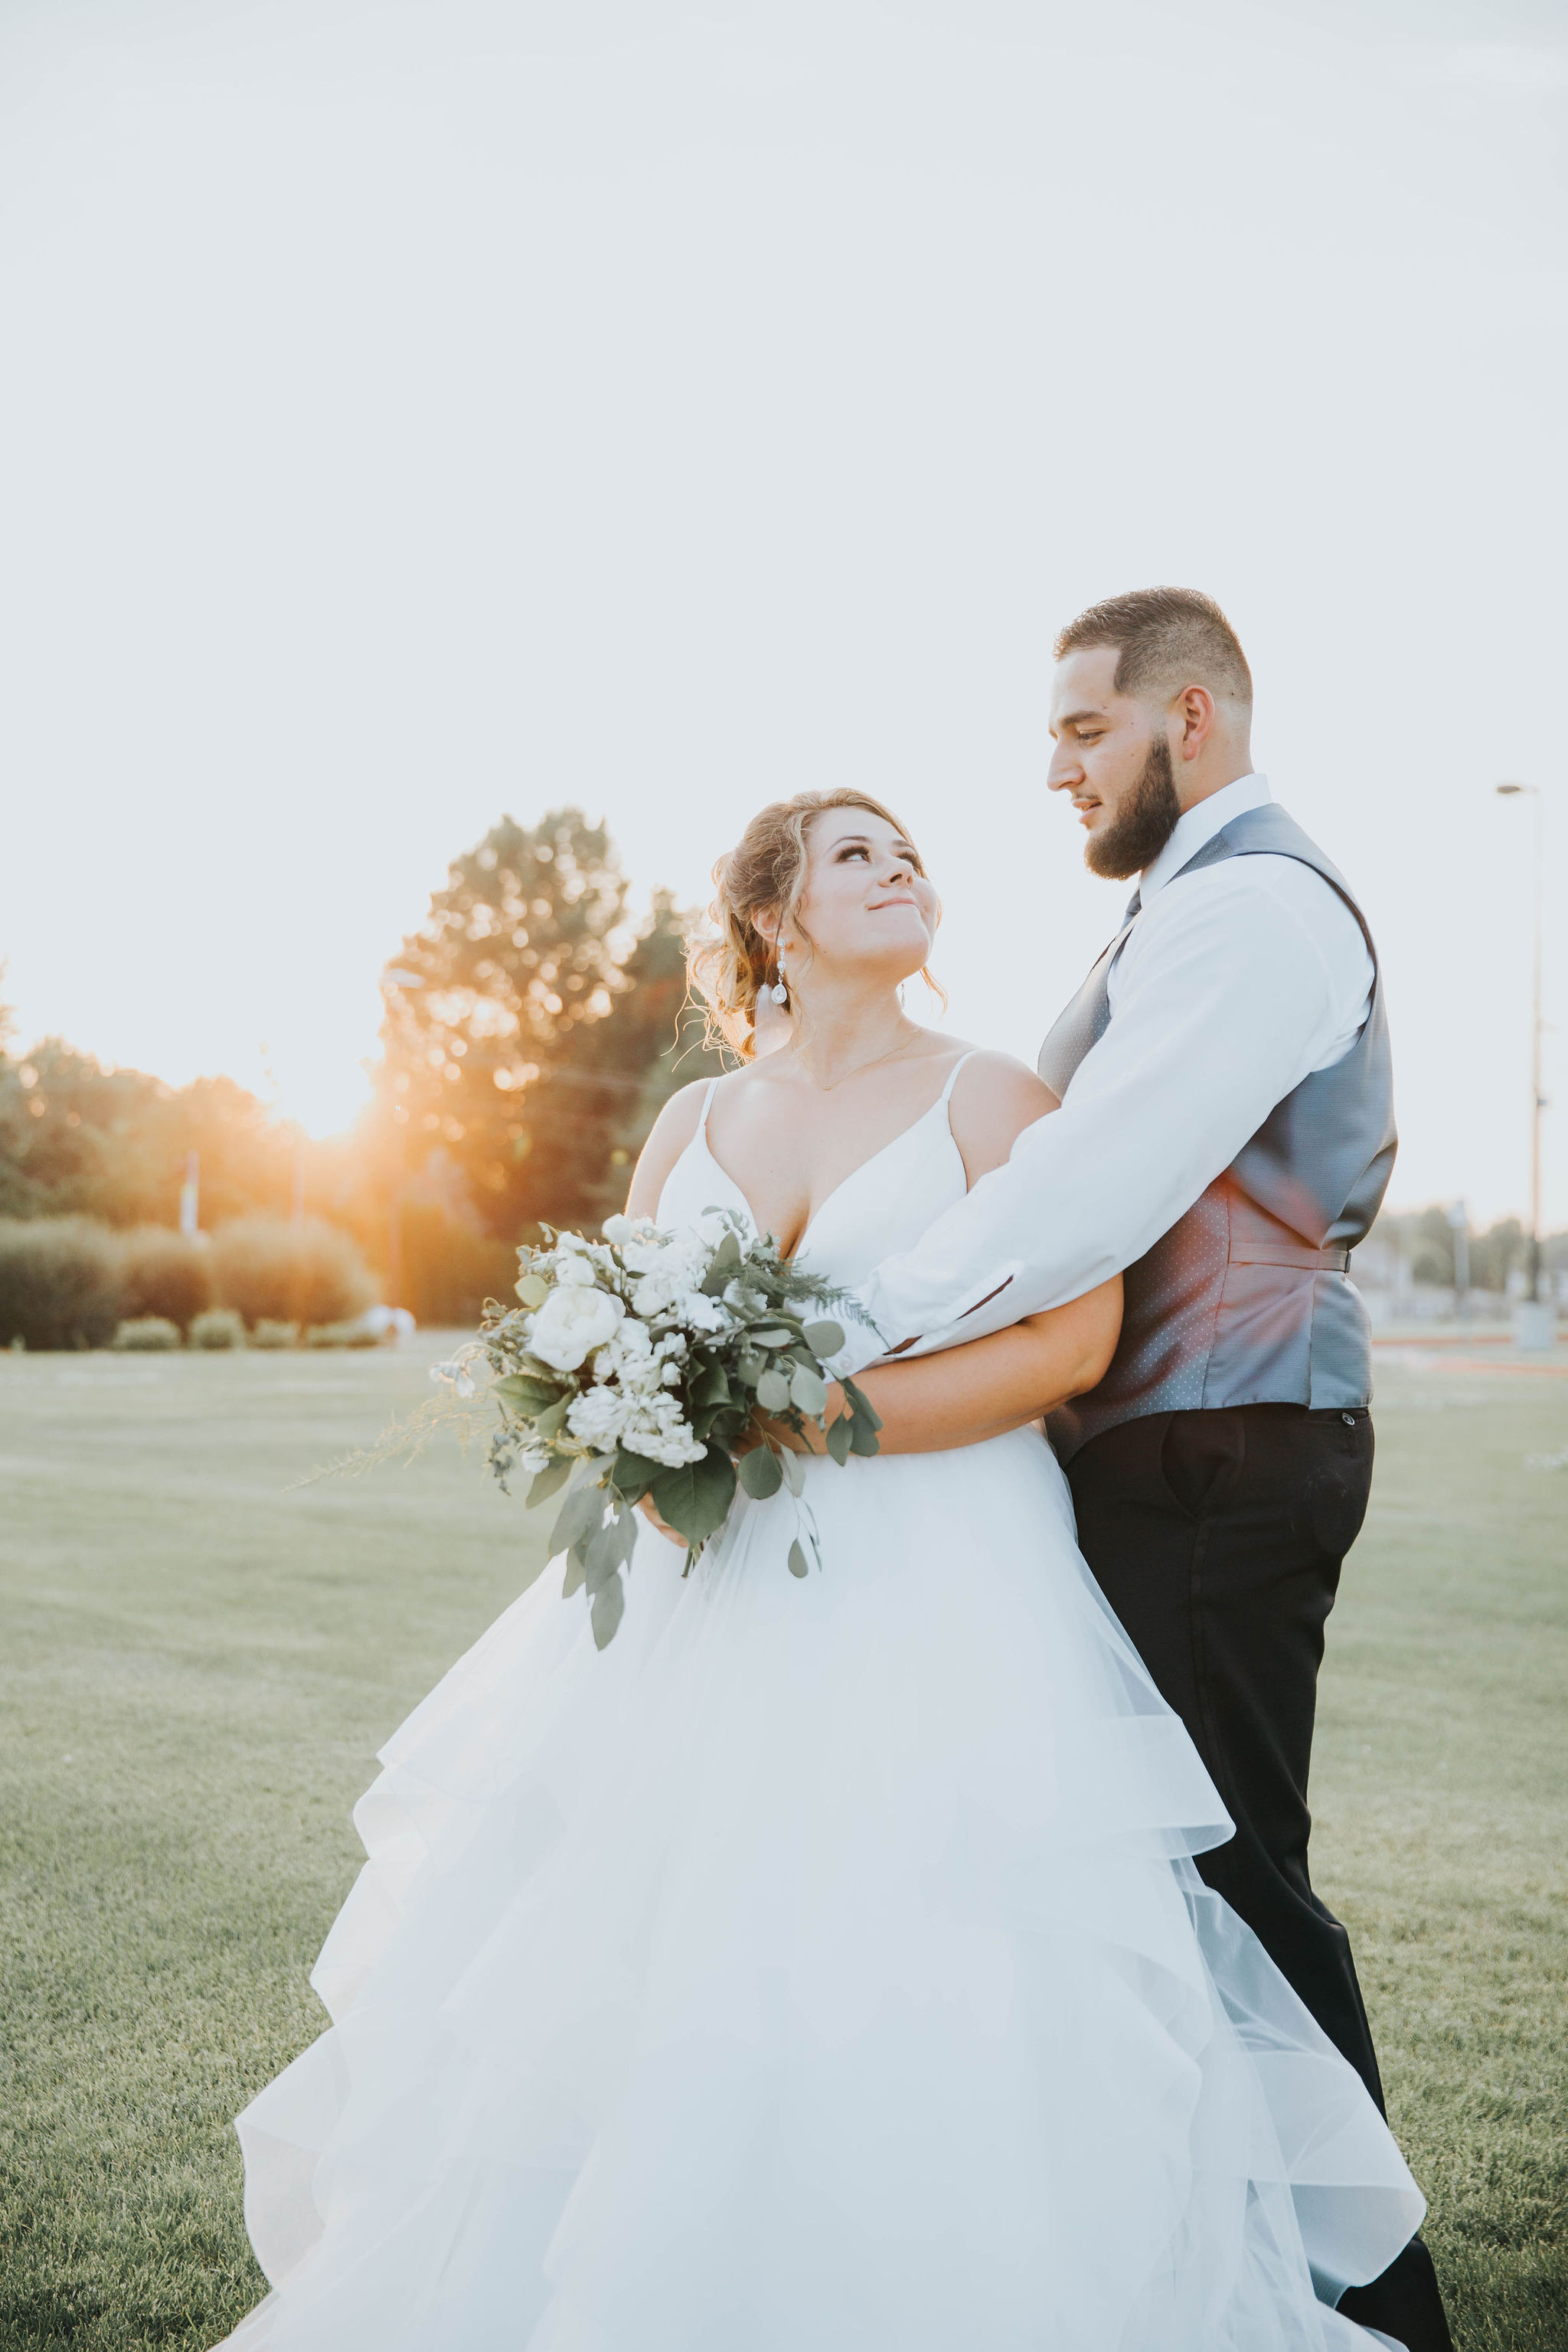 sunset summer wedding spokane bride and groom